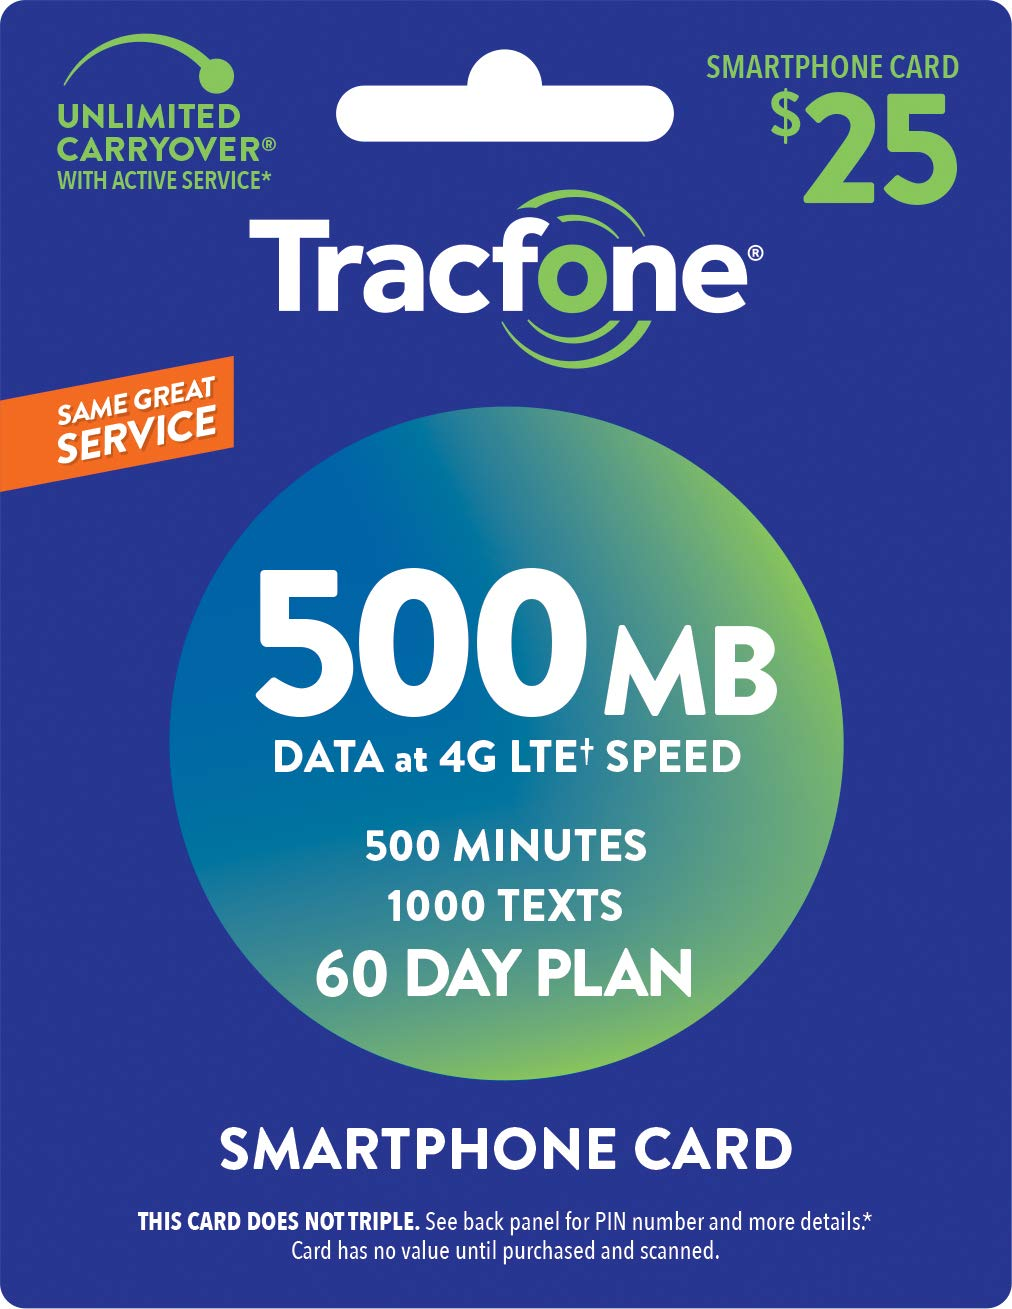 Tracfone Smartphone Only Airtime Service Card - 500 Minutes - 1000 Texts - 500 mb data by TracFone (Image #1)